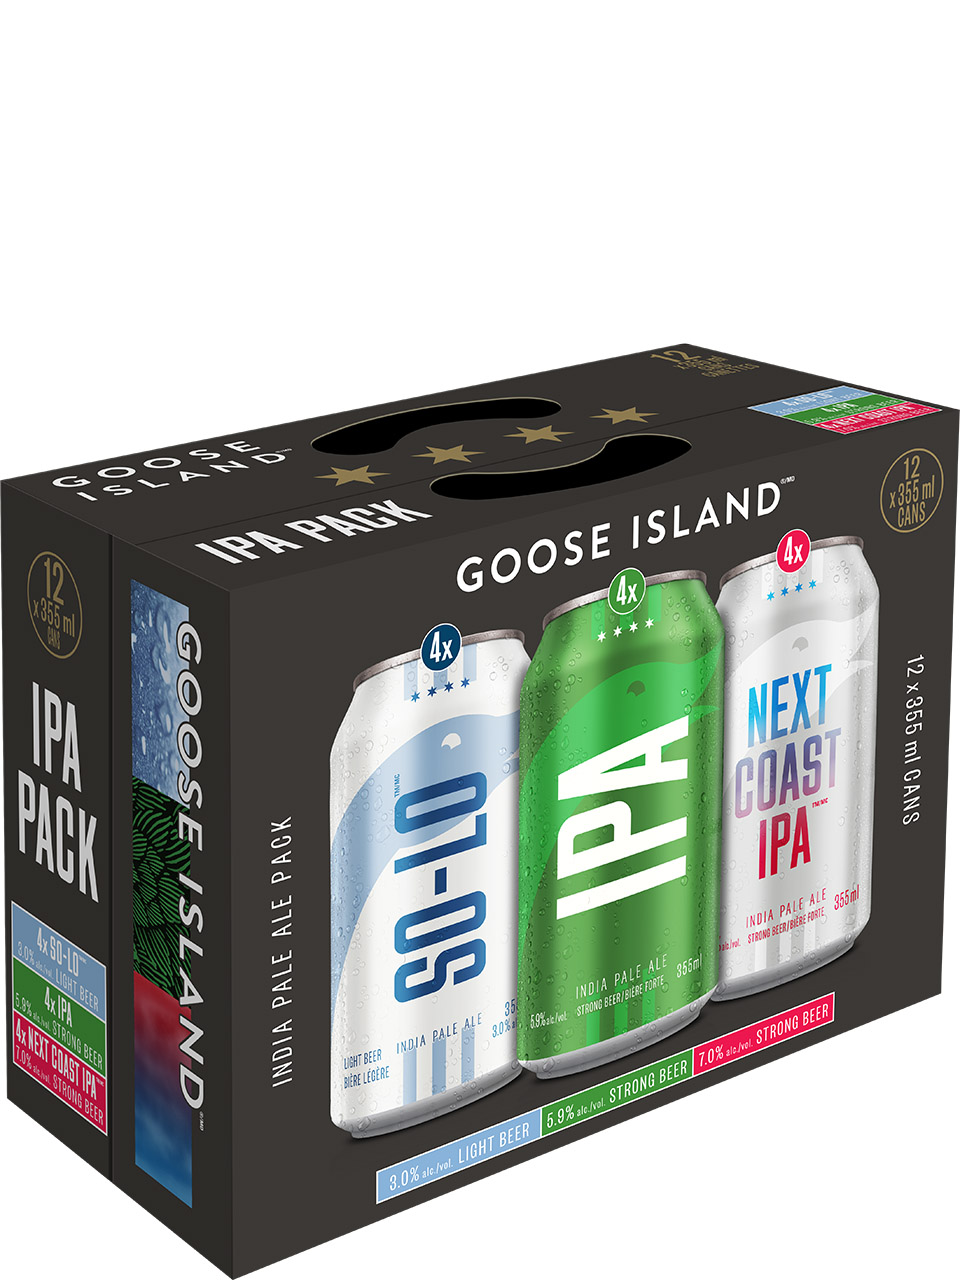 Goose Island IPA Mix Pack 12pk Cans